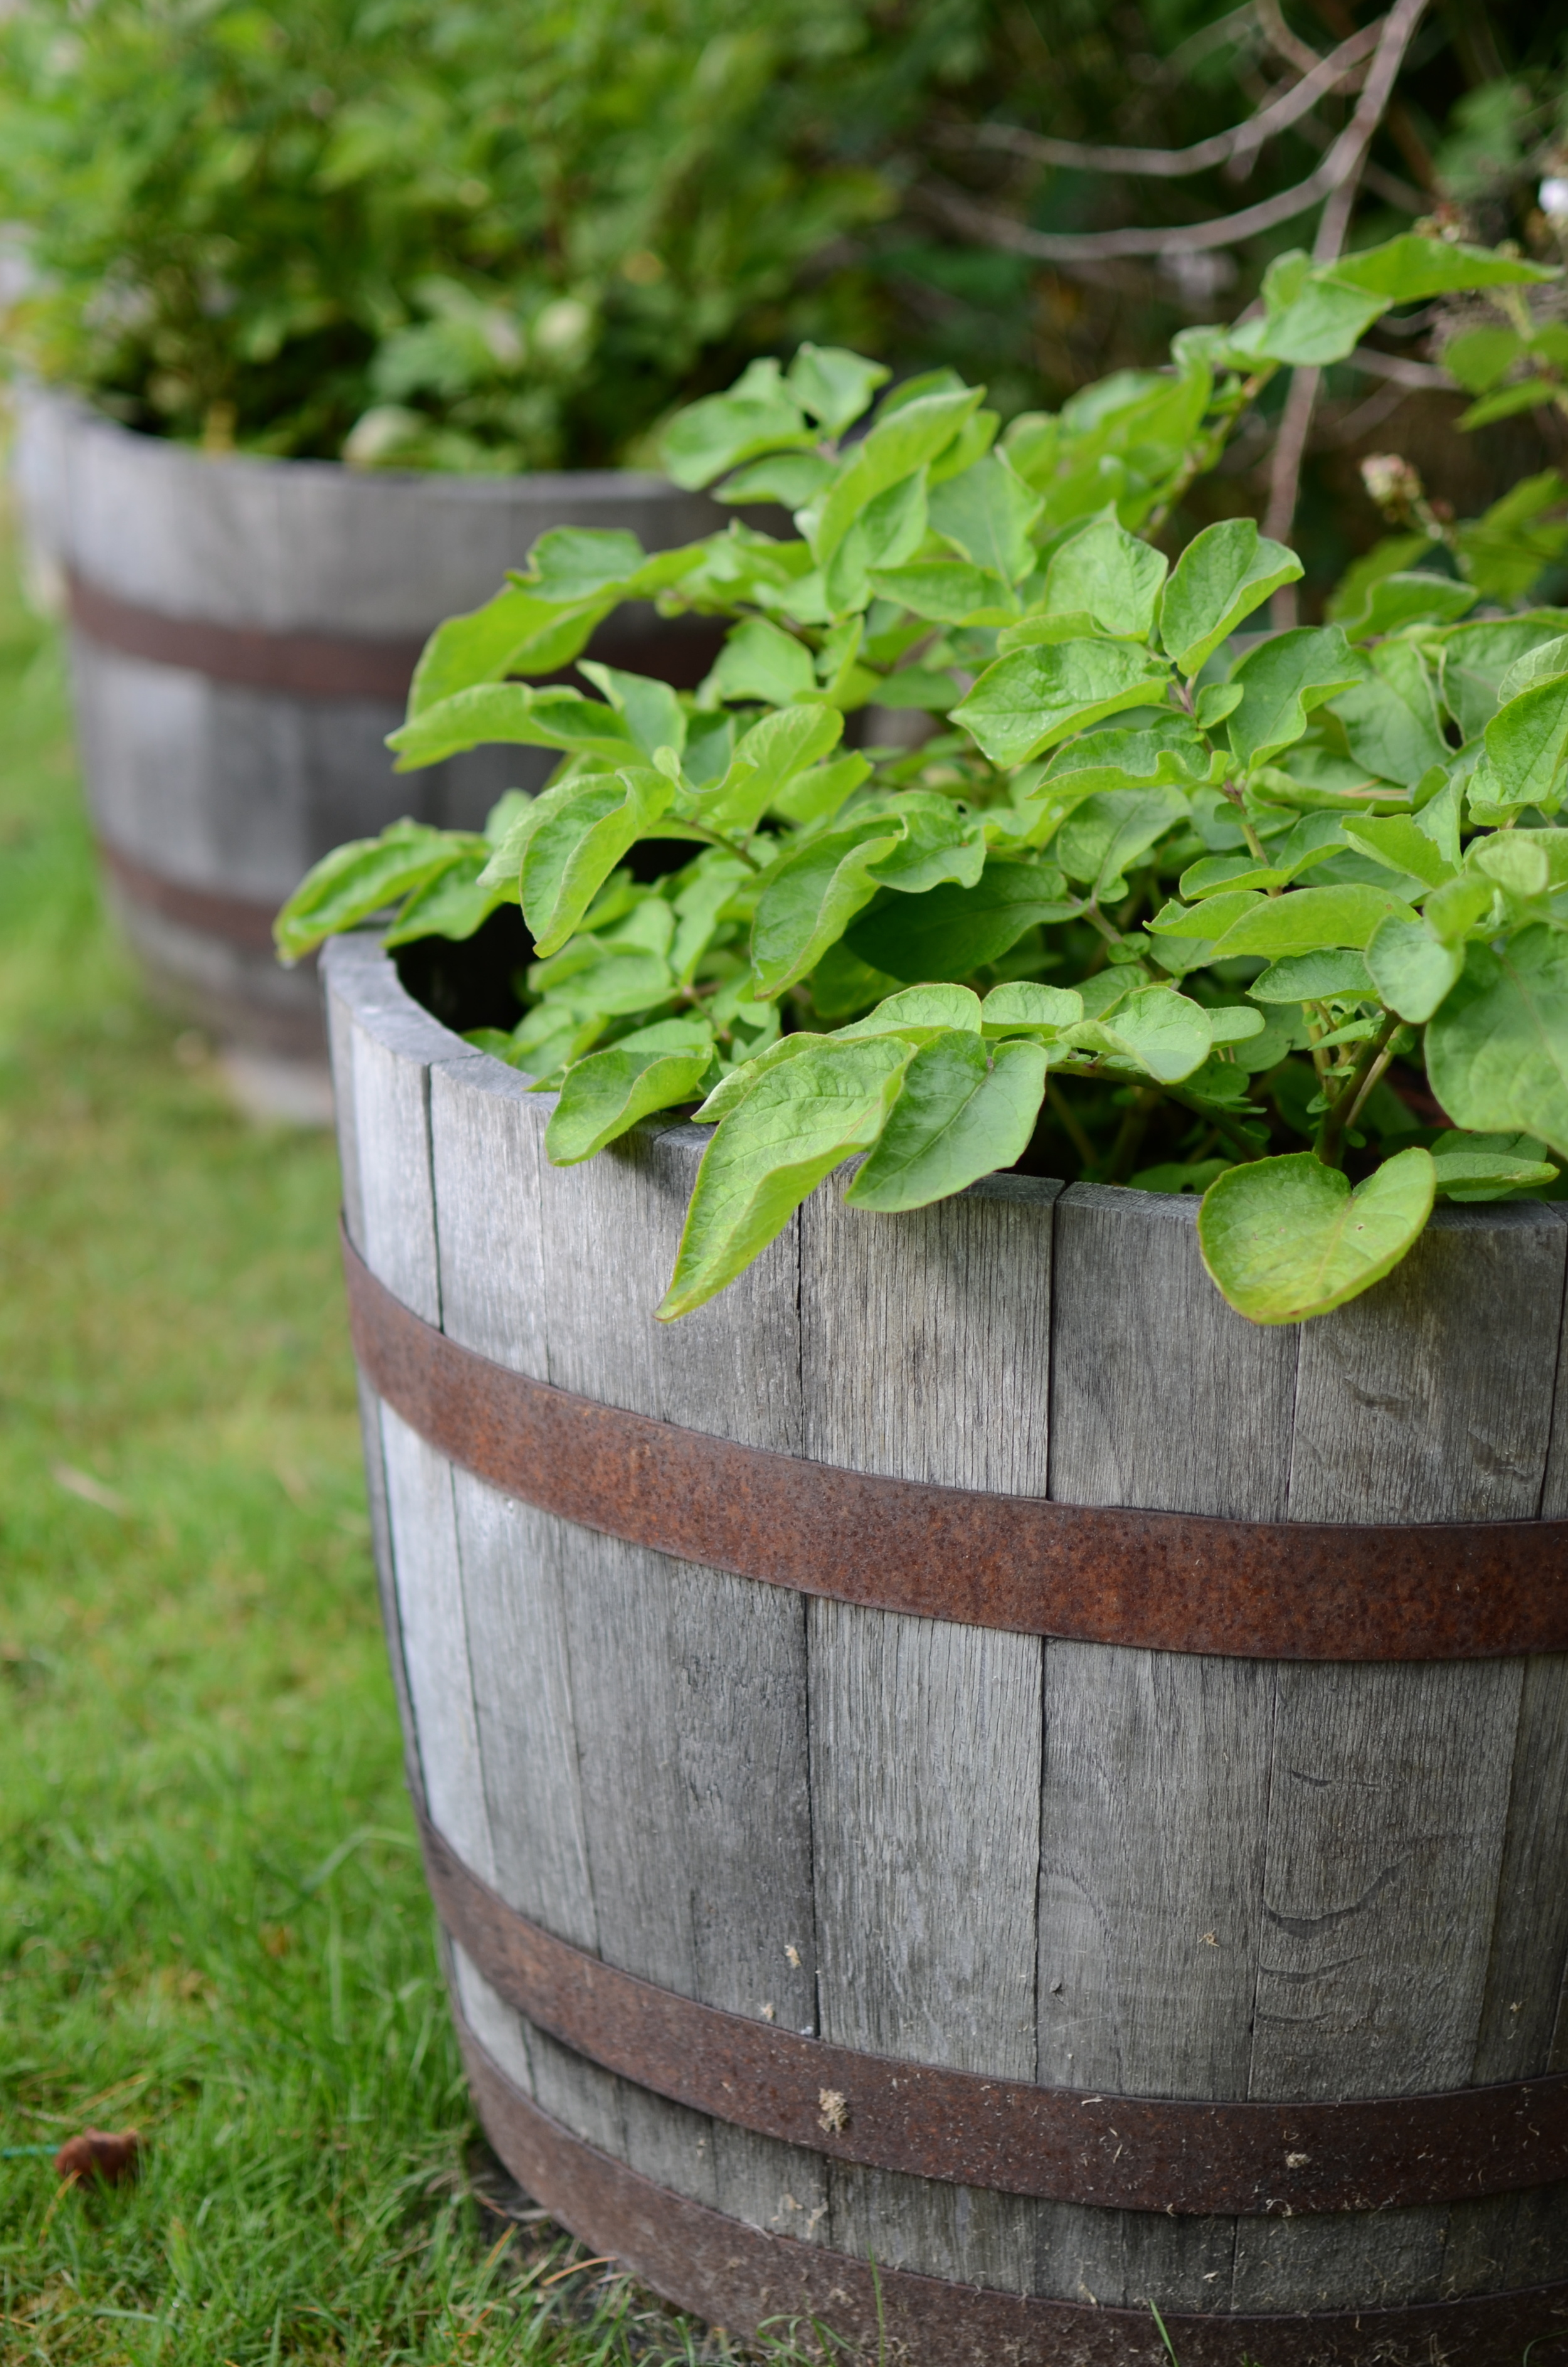 Potatoes in a wine barrel  -  p  hoto by Seattle Urban Farm Company